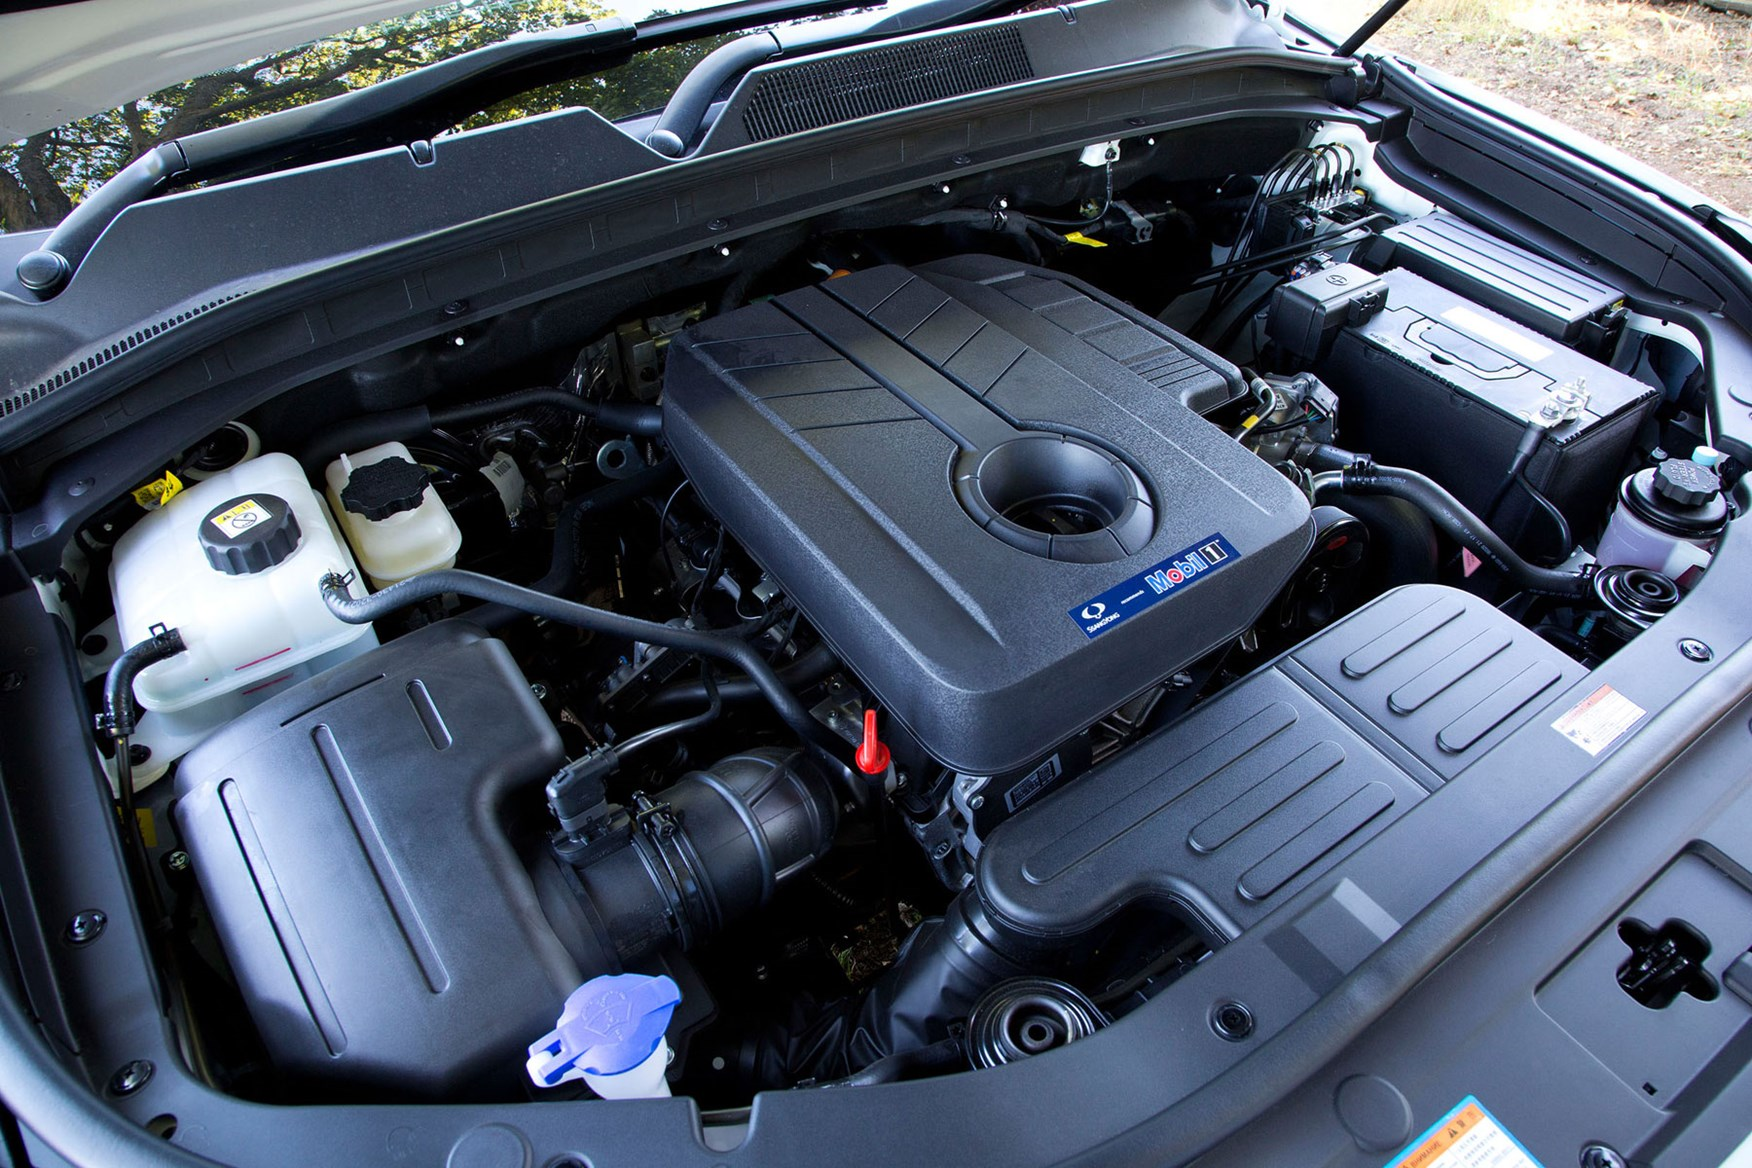 SsangYong Musso (2018-on) review, 2.2-litre diesel engine